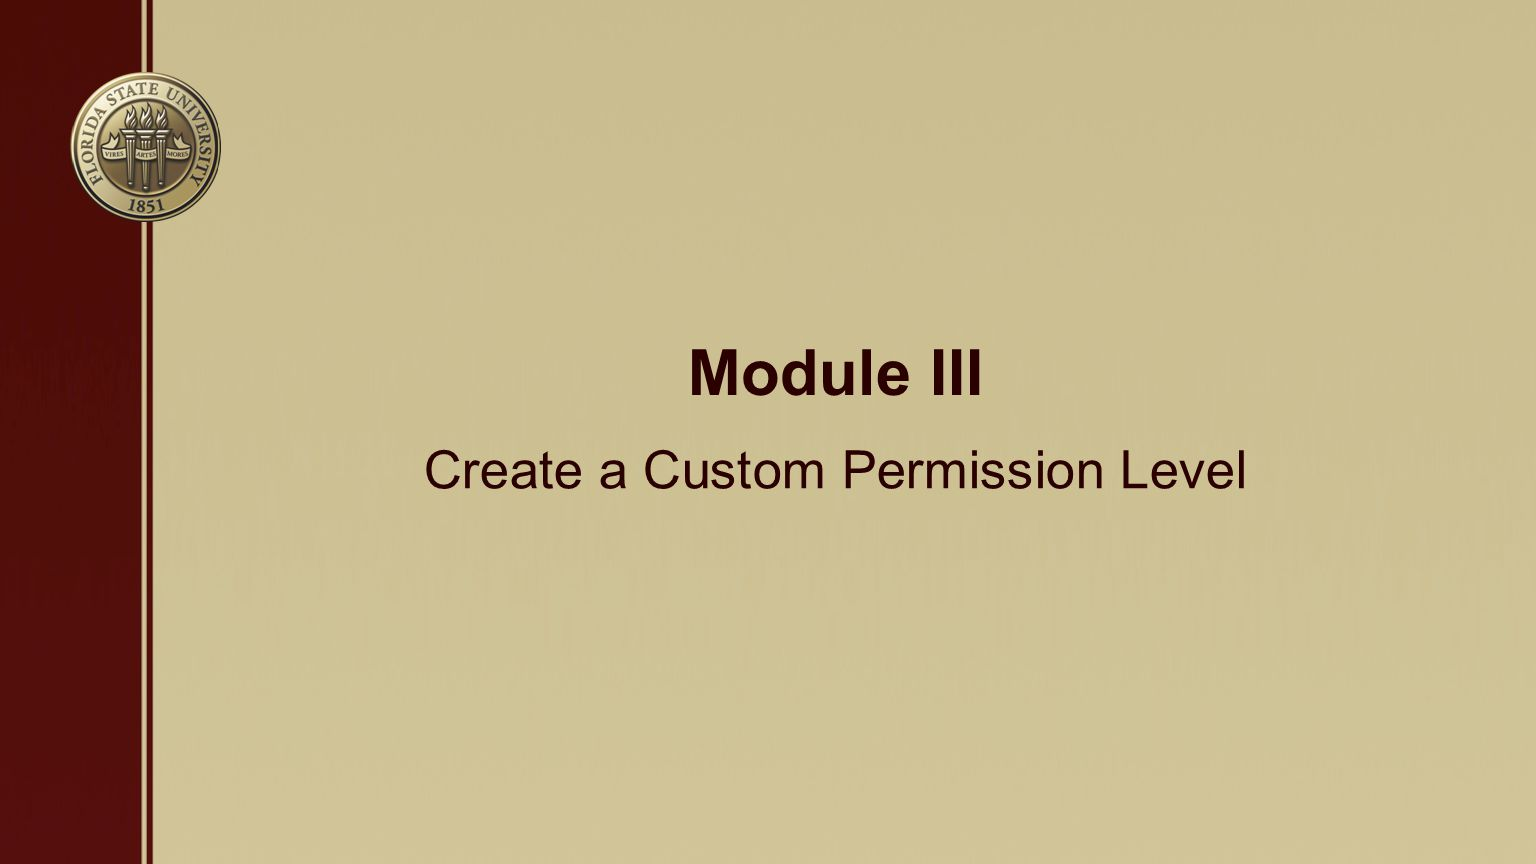 Module III Create a Custom Permission Level